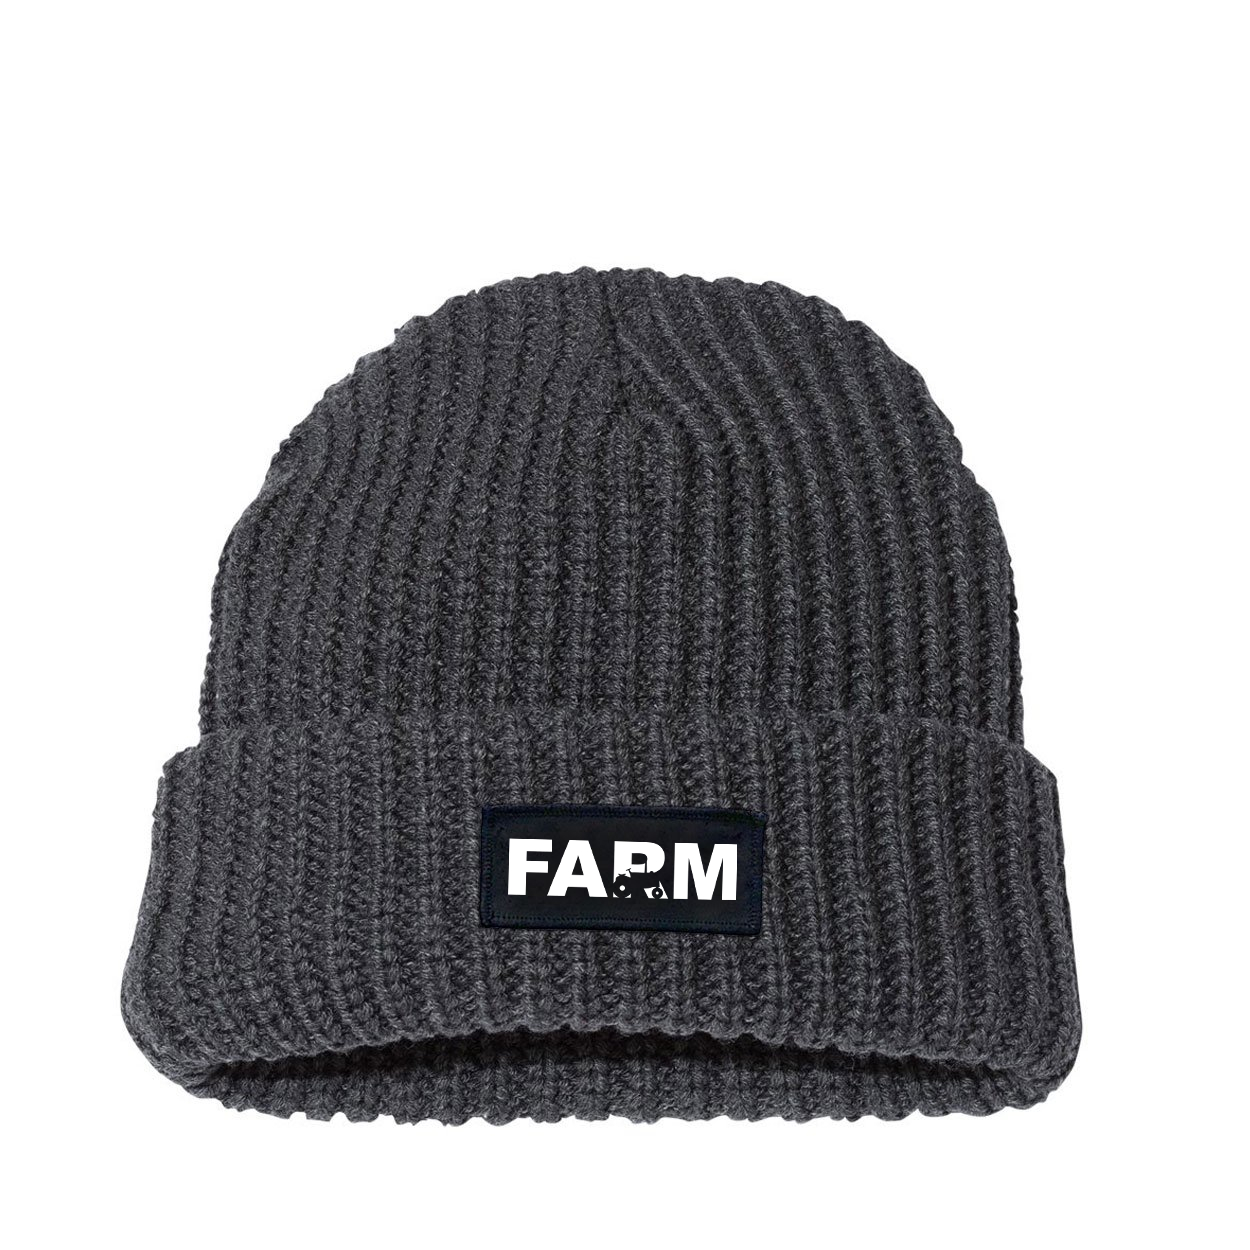 Farm Tractor Logo Night Out Woven Patch Roll Up Jumbo Chunky Knit Beanie Charcoal (White Logo)